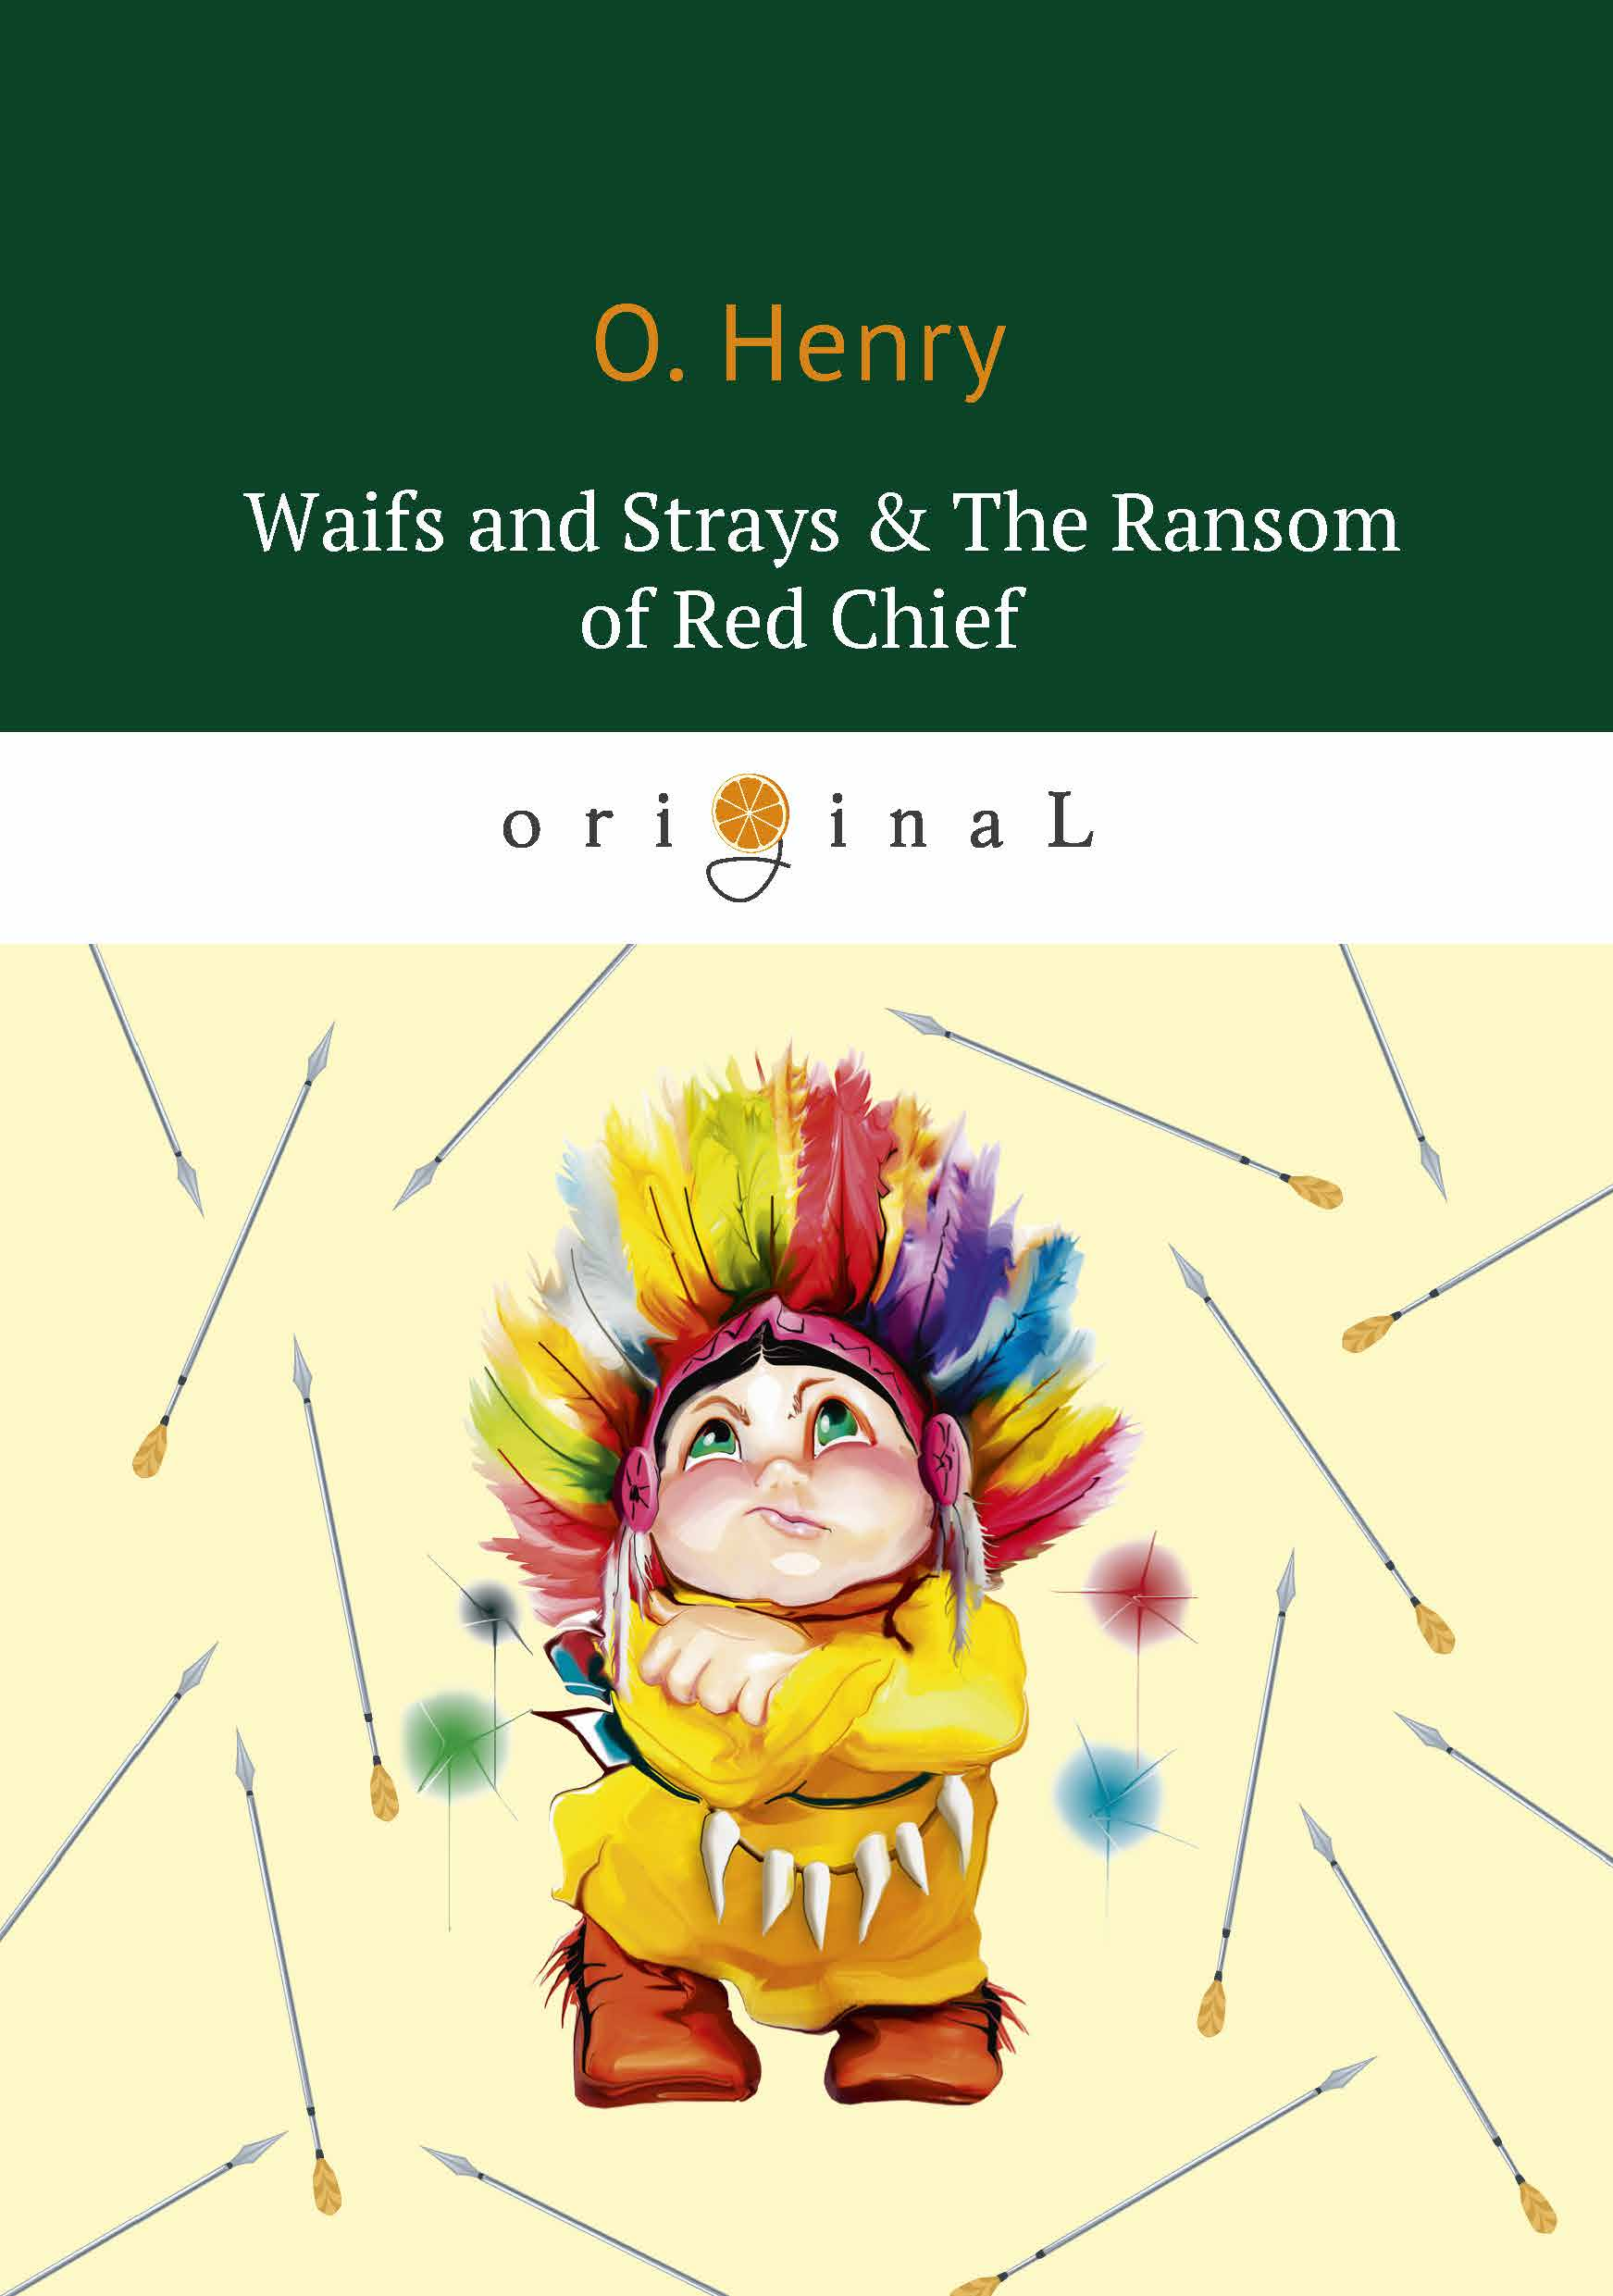 O. Henry Waifs and Strays & The Ransom of Red Chief